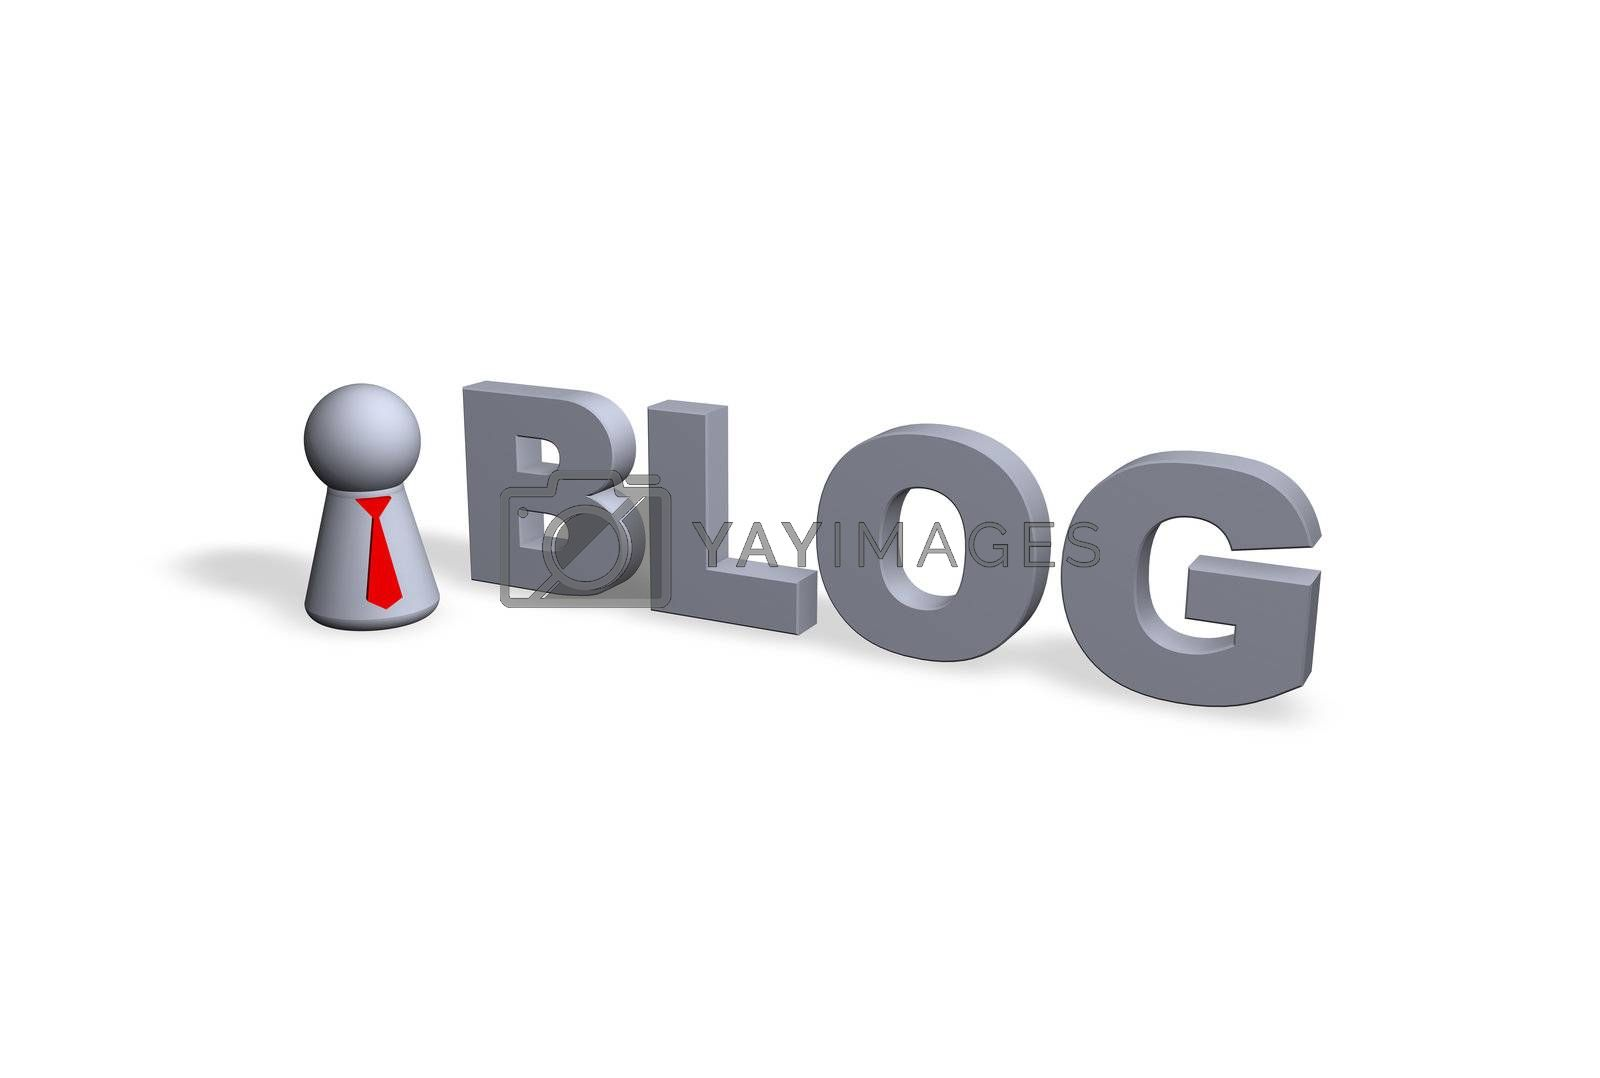 blog text in 3d and play figure with red tie